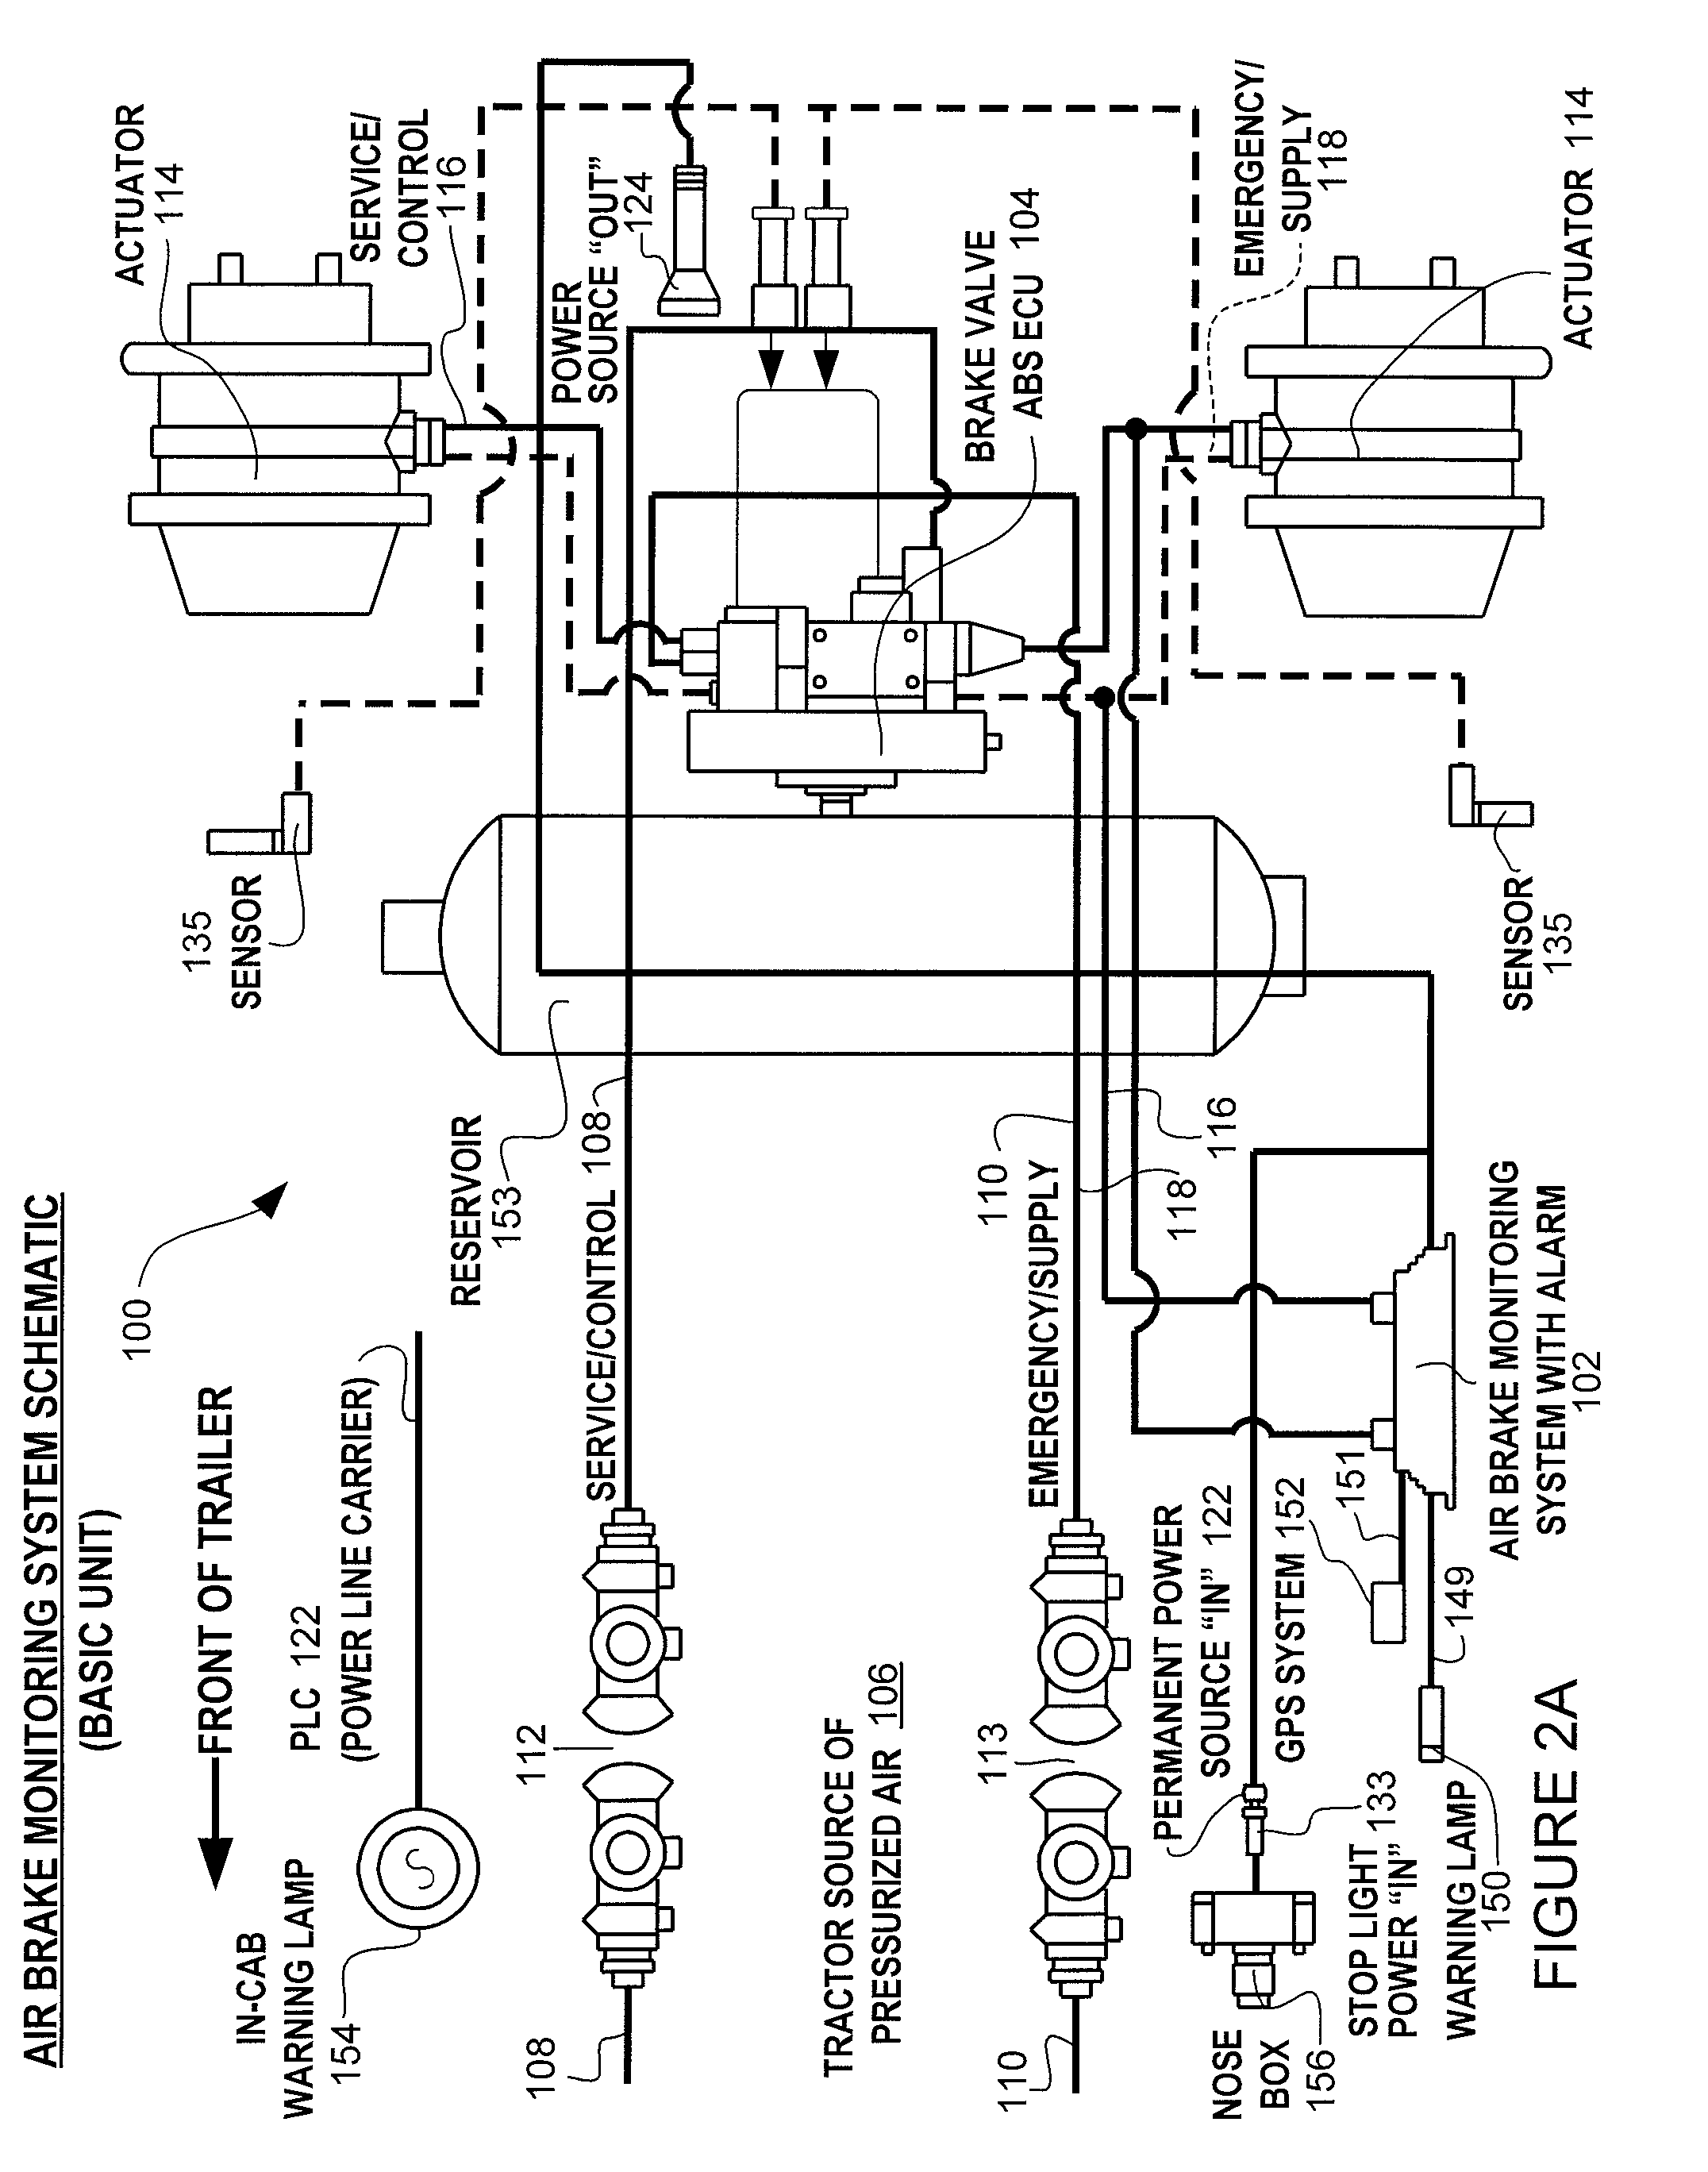 WRG-2562] Haldex Abs Wiring Diagram on utility trailer seats, utility trailer specifications, trailer parts diagram, utility trailer suspension, 7 pronge trailer connector diagram, utility trailer steering diagram, truck trailer diagram, utility trailer plug, 4 pin trailer diagram, utility trailer chassis, utility trailer maintenance, utility trailer frame, utility trailer parts catalog, utility trailer lights, utility trailer assembly, utility trailer schematics, utility trailer repair, utility trailer accessories, utility trailer motor, electric trailer jack switch diagram,